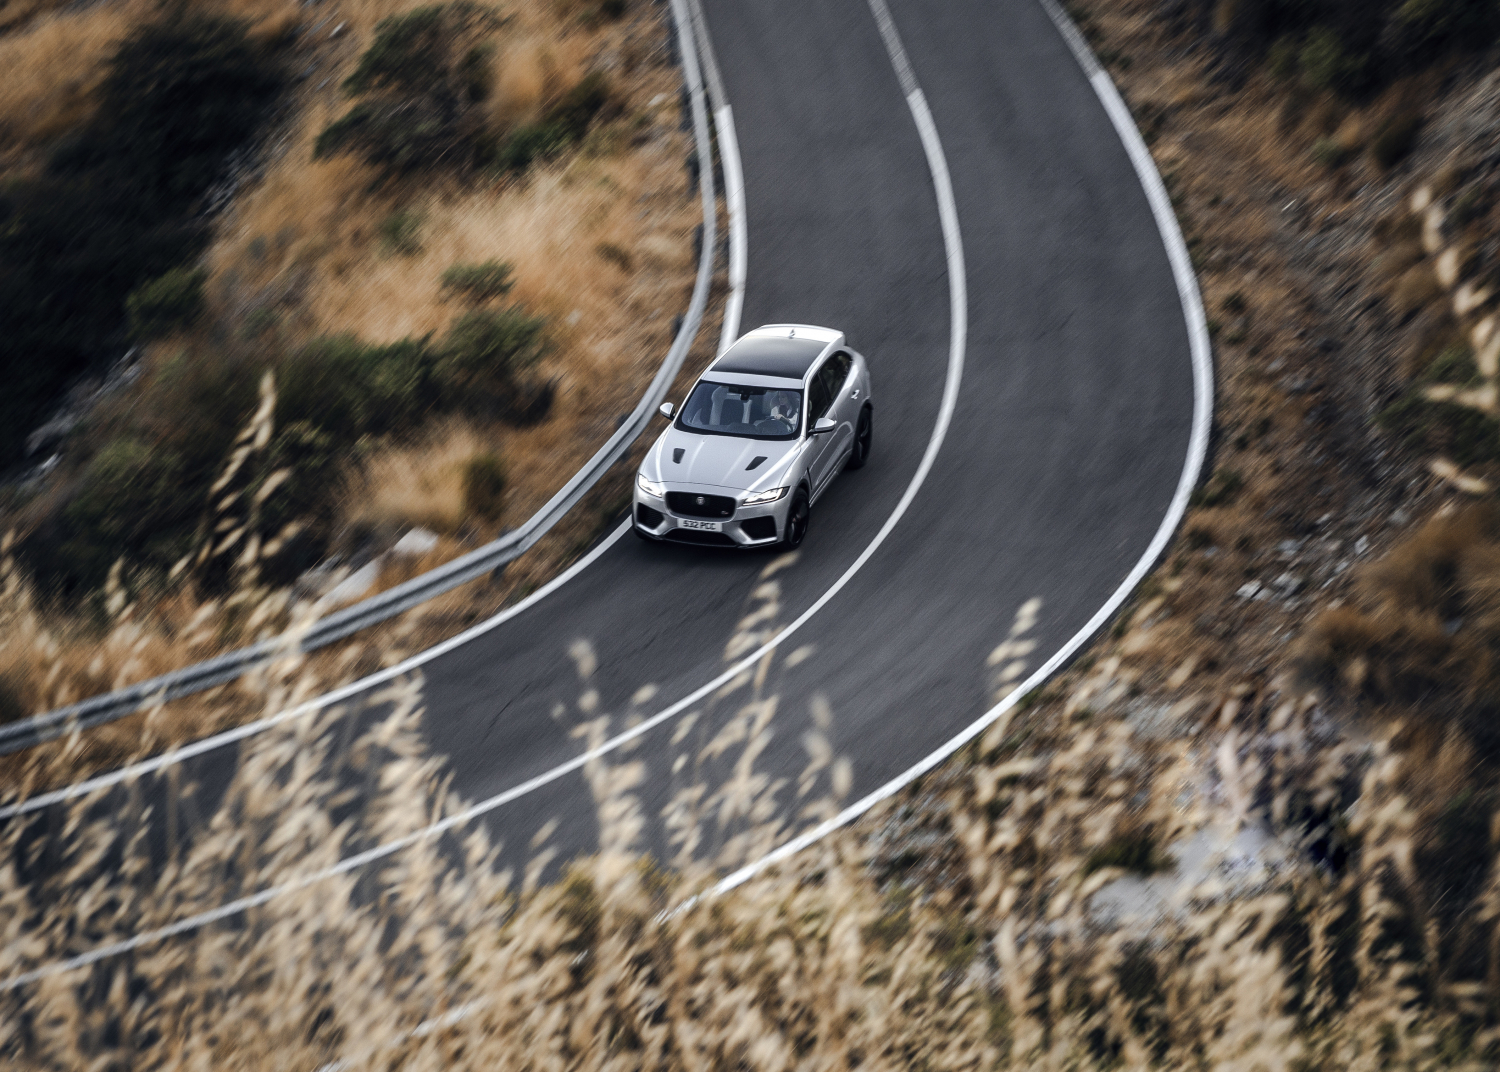 Jaguar F-pace Gives New-generation Canon Eos System Camera its First High-performance Work-out - Image 2